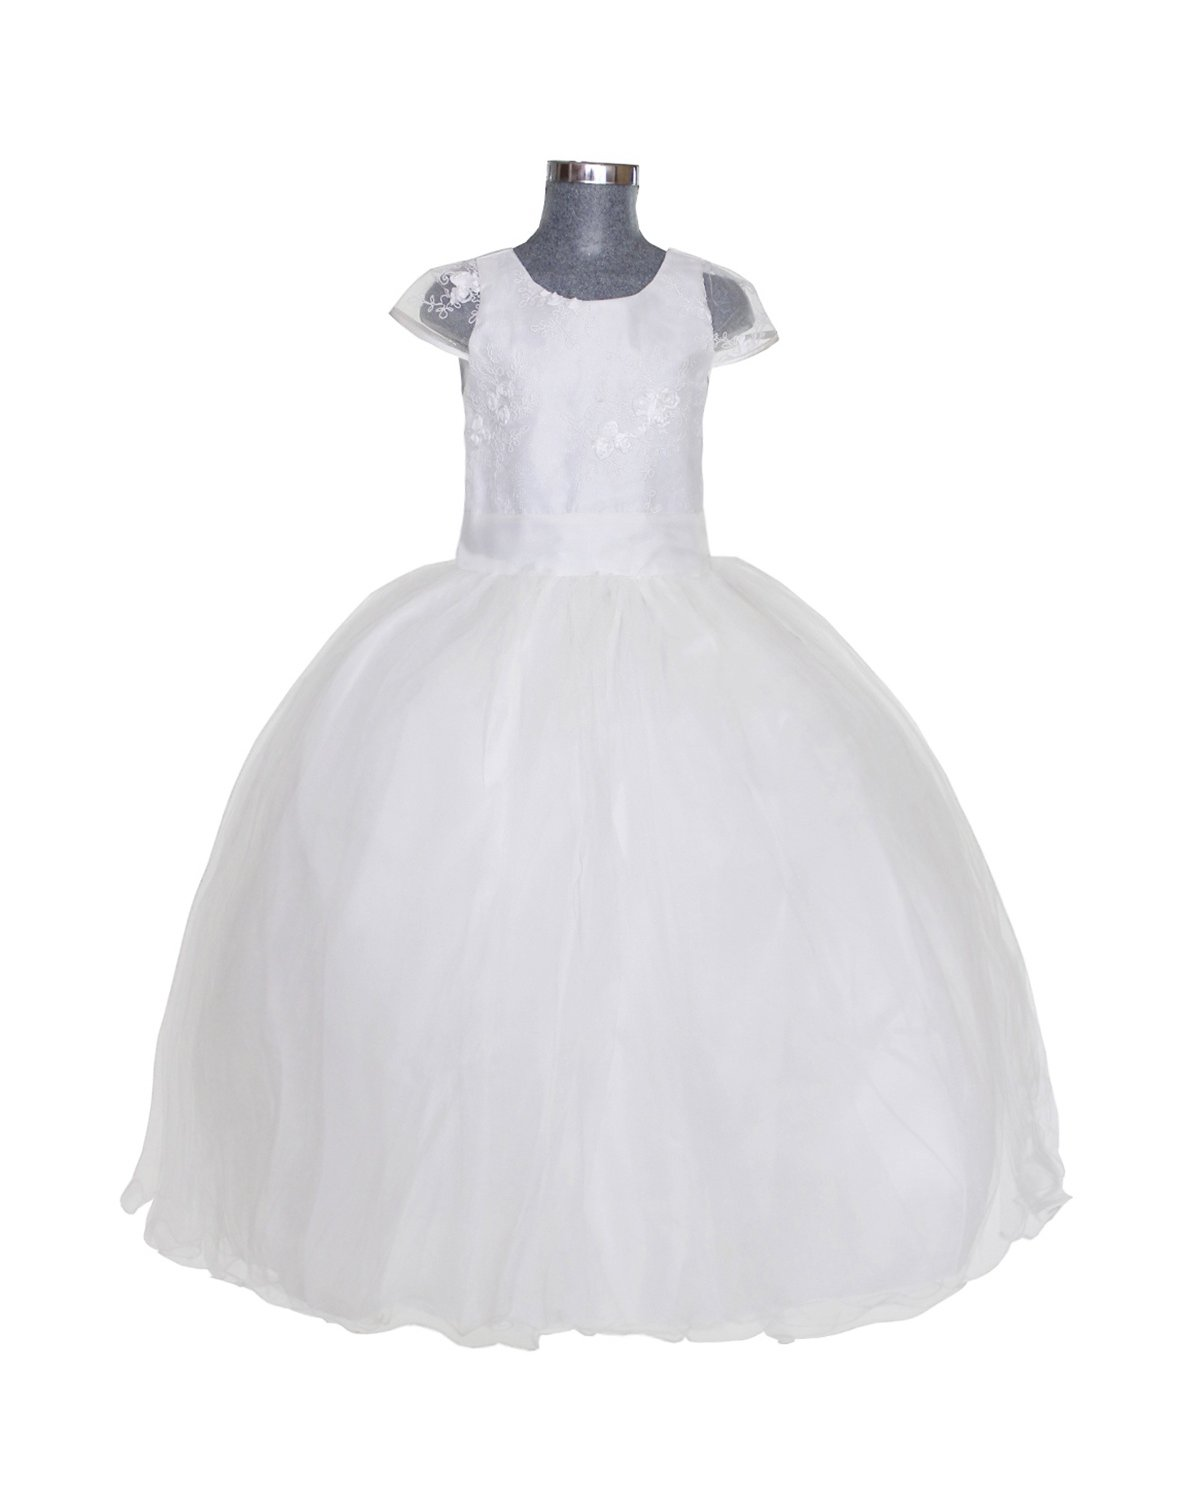 ROSY GIRL MODEL DRESS WITHOUT BELT